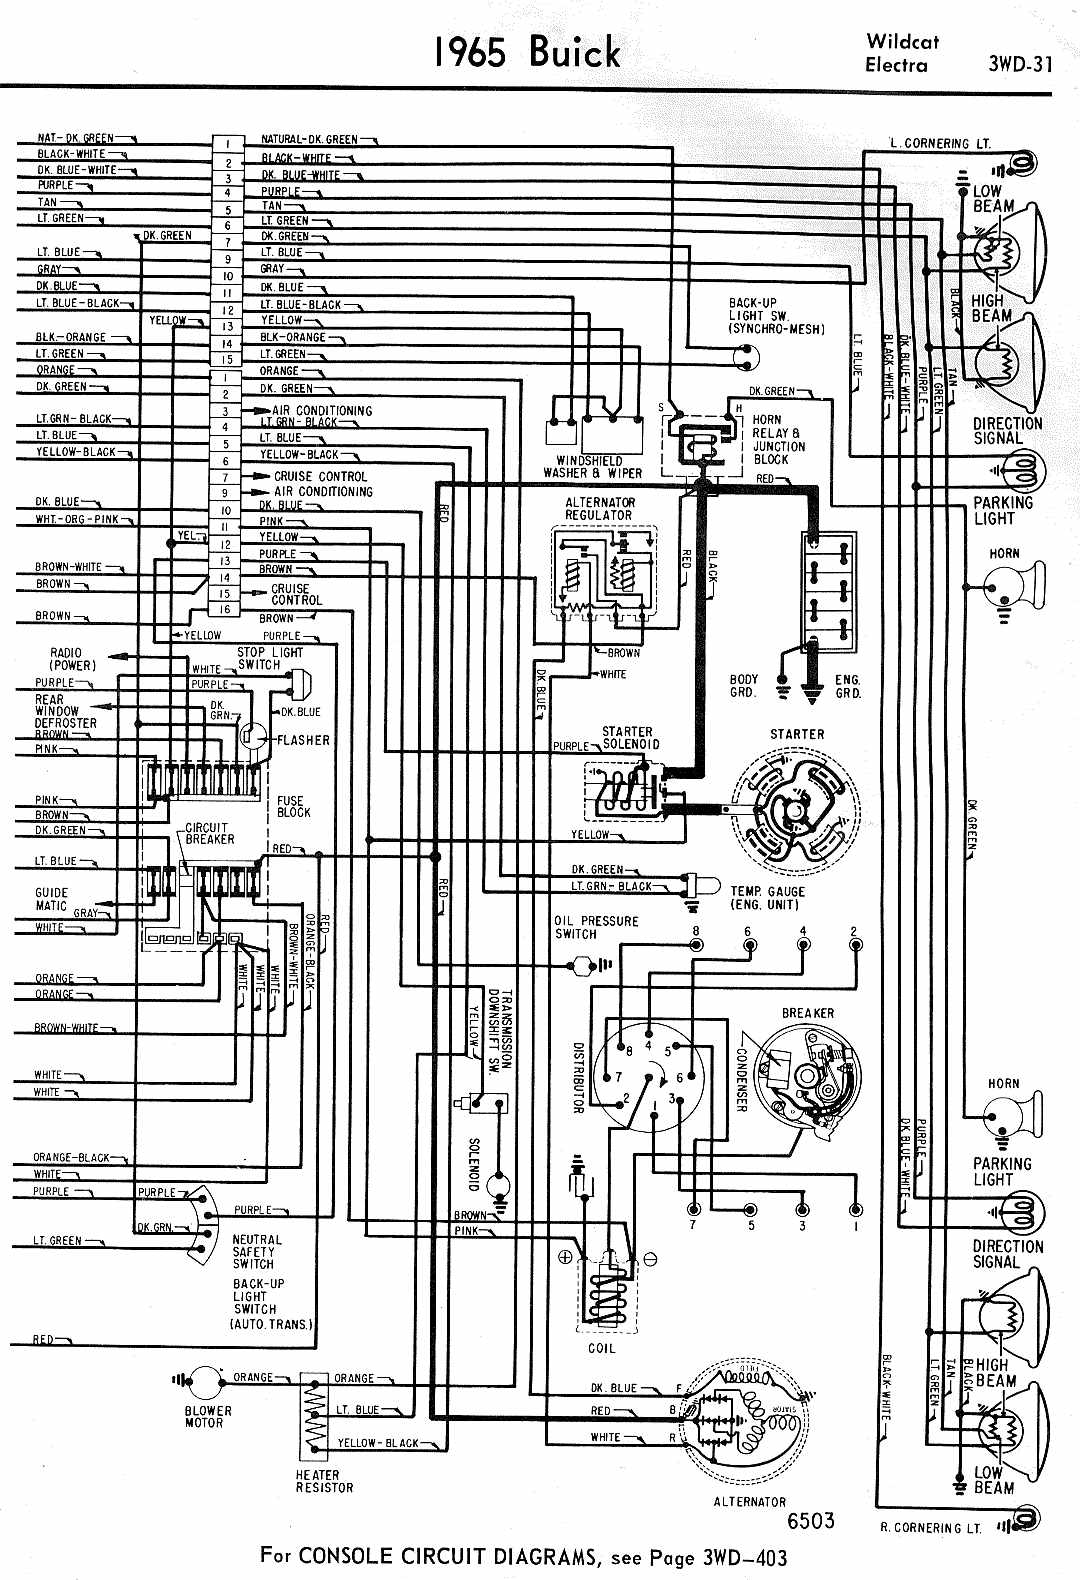 Buick Terraza Wiring Diagram - Wiring Diagram Direct state-demand -  state-demand.siciliabeb.it | 2008 Buick Allure Wiring Diagram |  | state-demand.siciliabeb.it